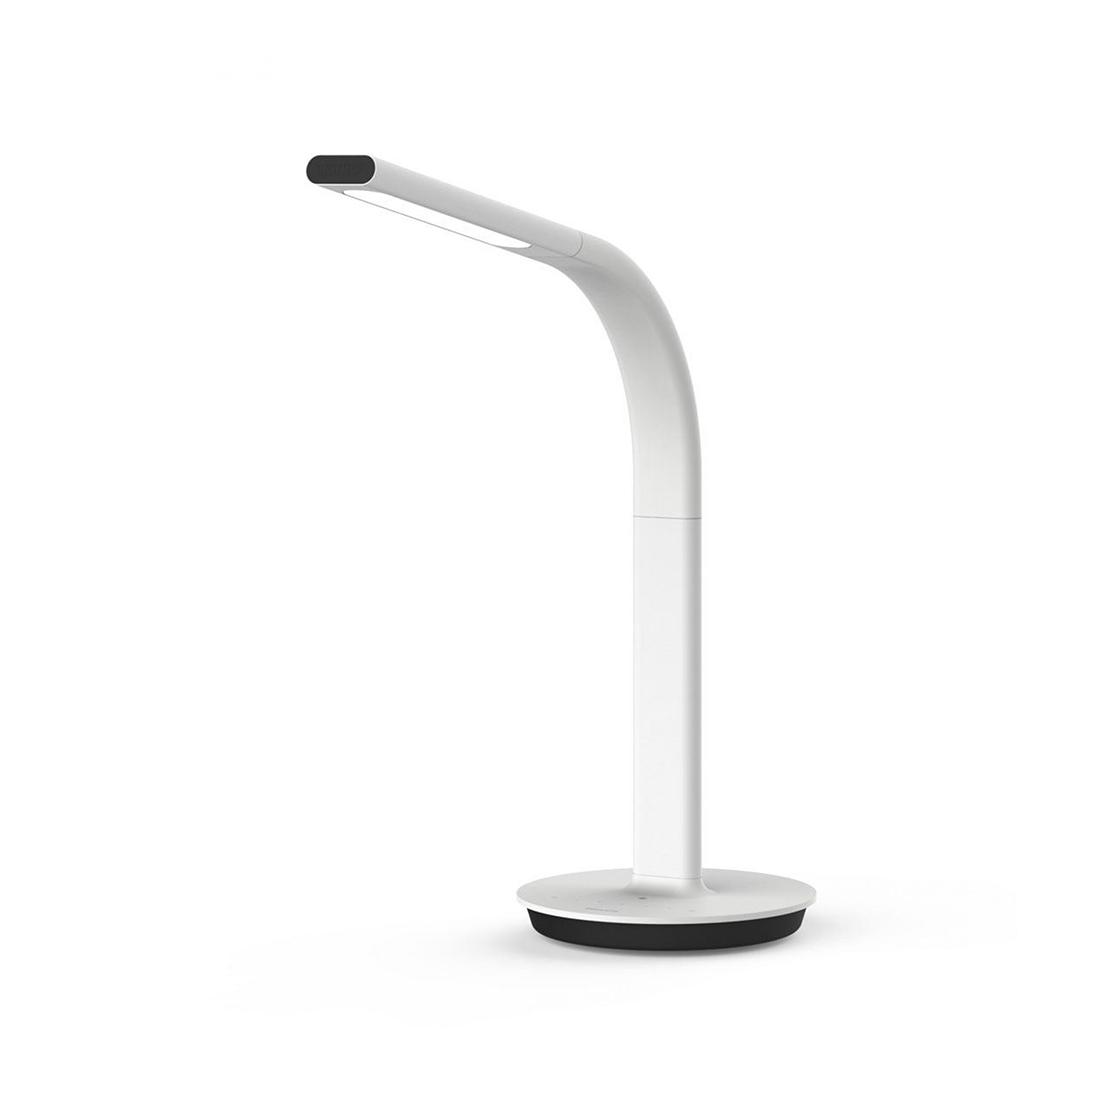 Лампа настольная Xiaomi Philips Eyecare Smart Lamp 2